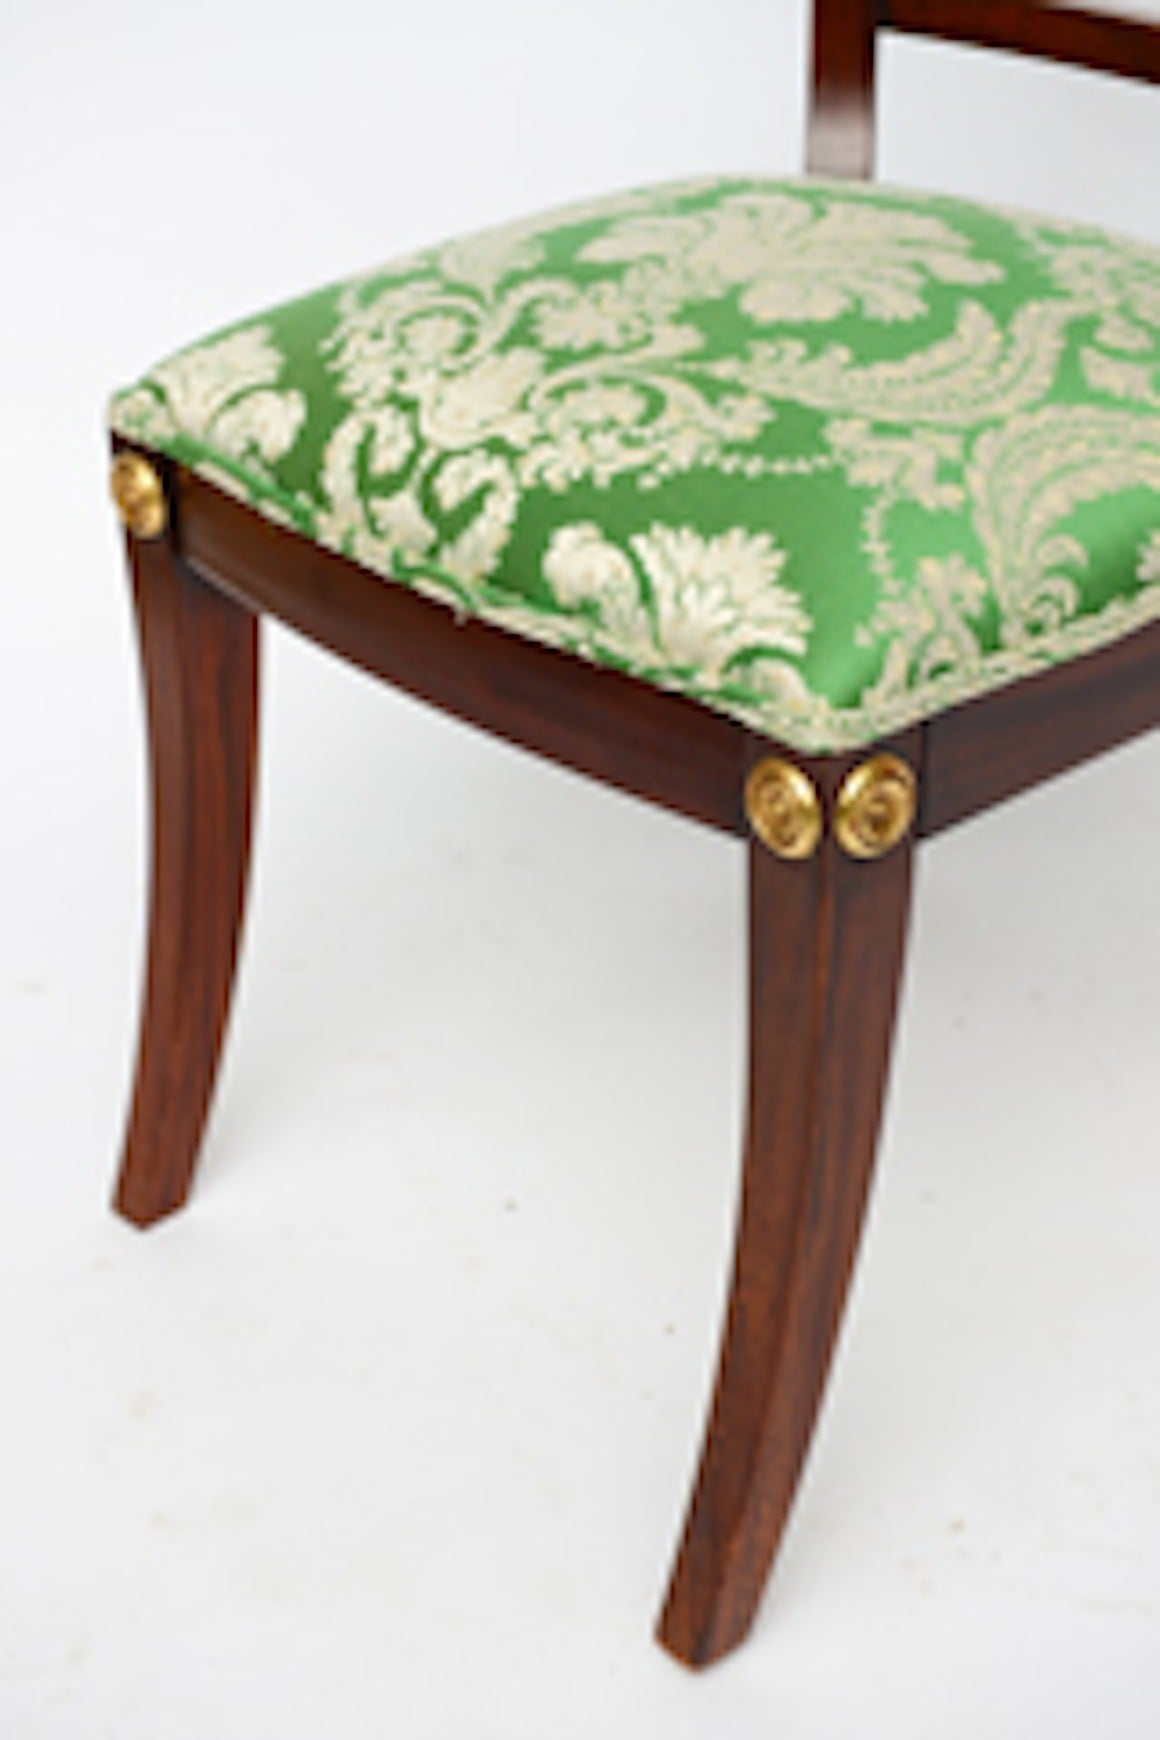 Elegant Regency Klismos Dining Chairs, Highly Carved Gilt Details, 19th Century For Sale 4